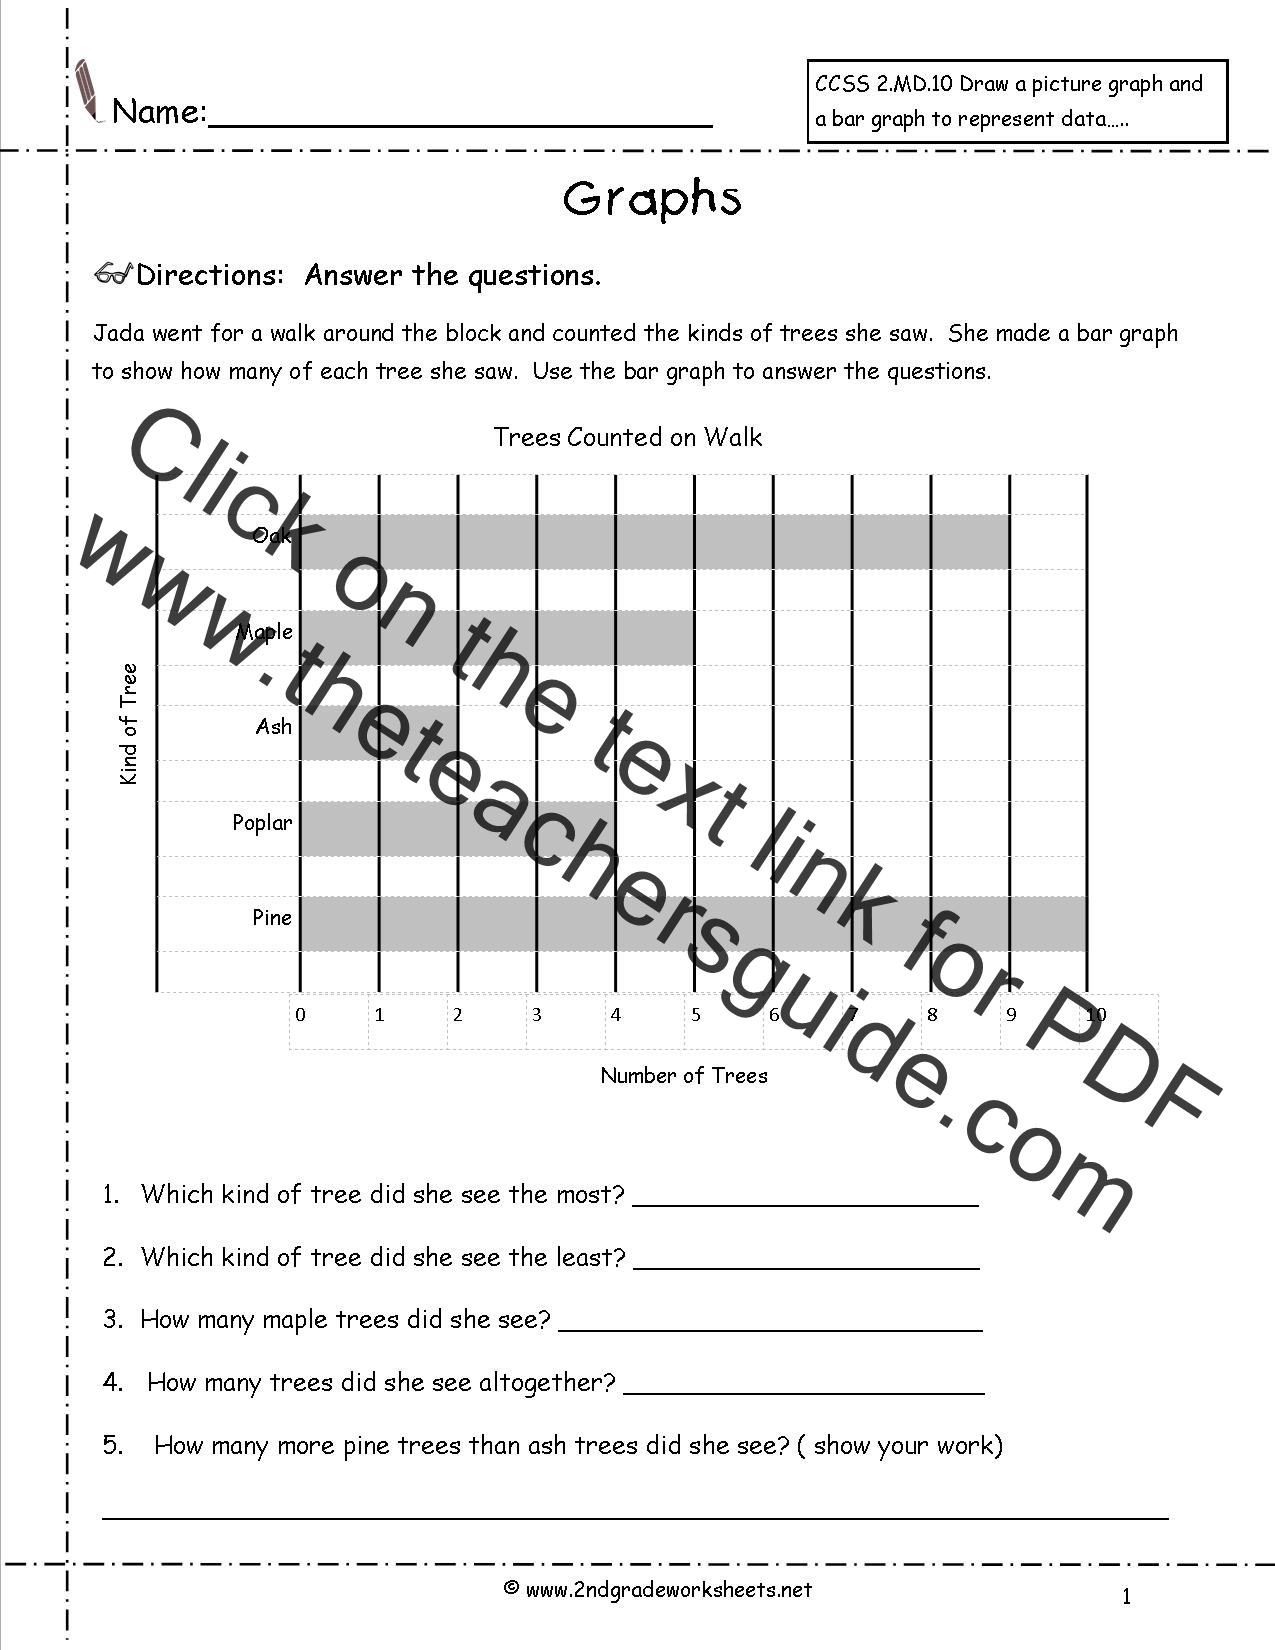 Worksheets Bar Graph Worksheets reading and creating bar graph worksheets tree graph